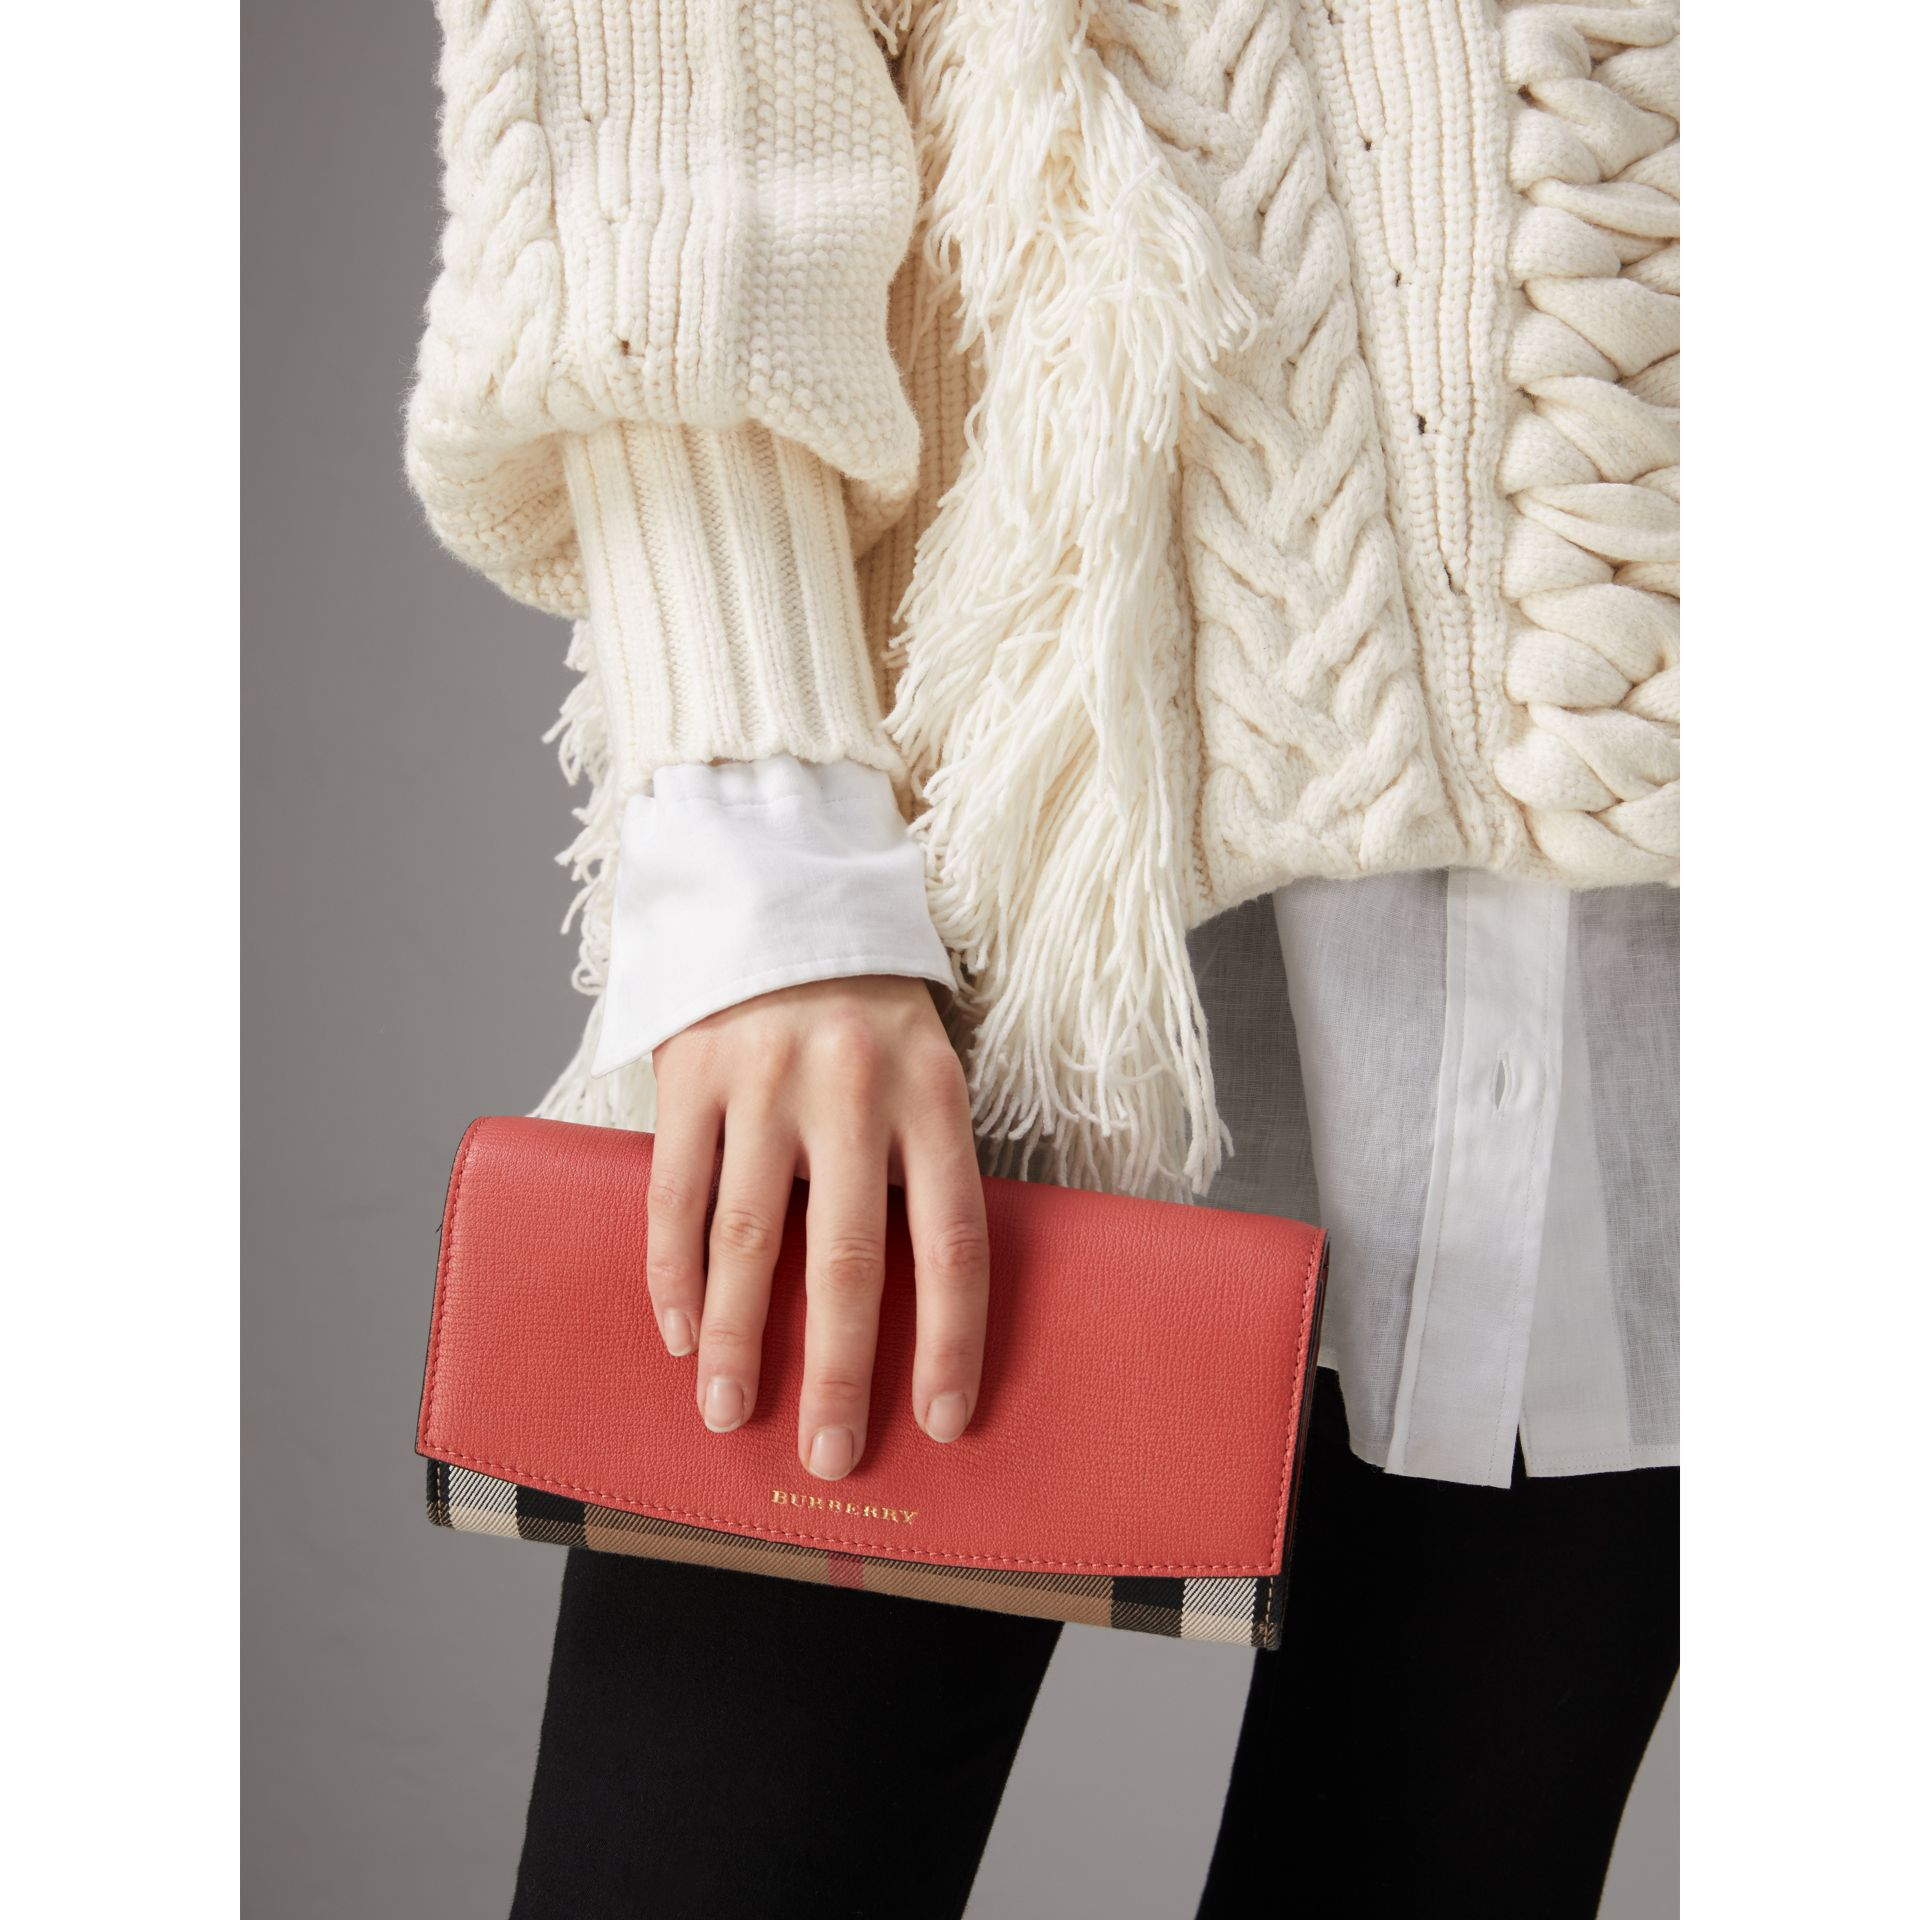 House Check and Leather Wallet with Chain in Cinnamon Red - Women | Burberry - gallery image 3